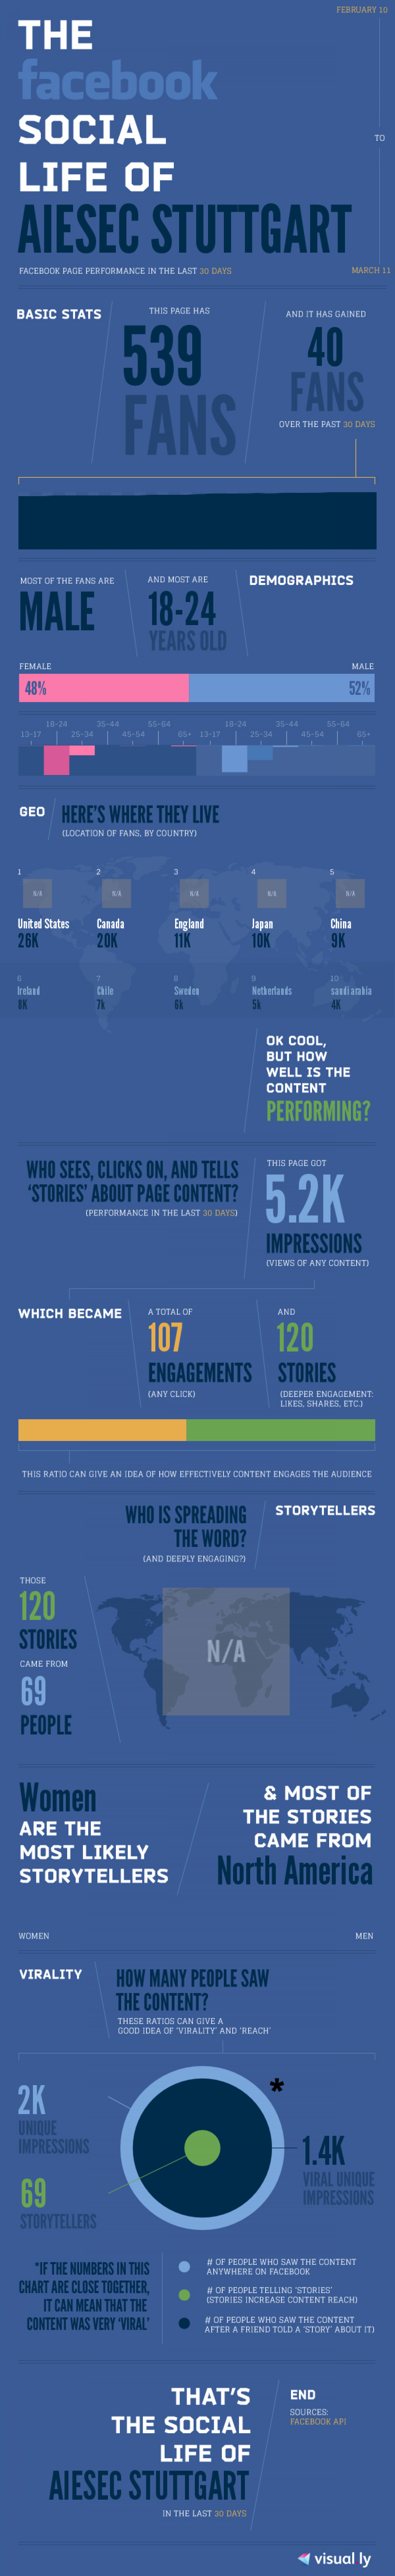 The Social Life of AIESEC Stuttgart on Facebook Infographic